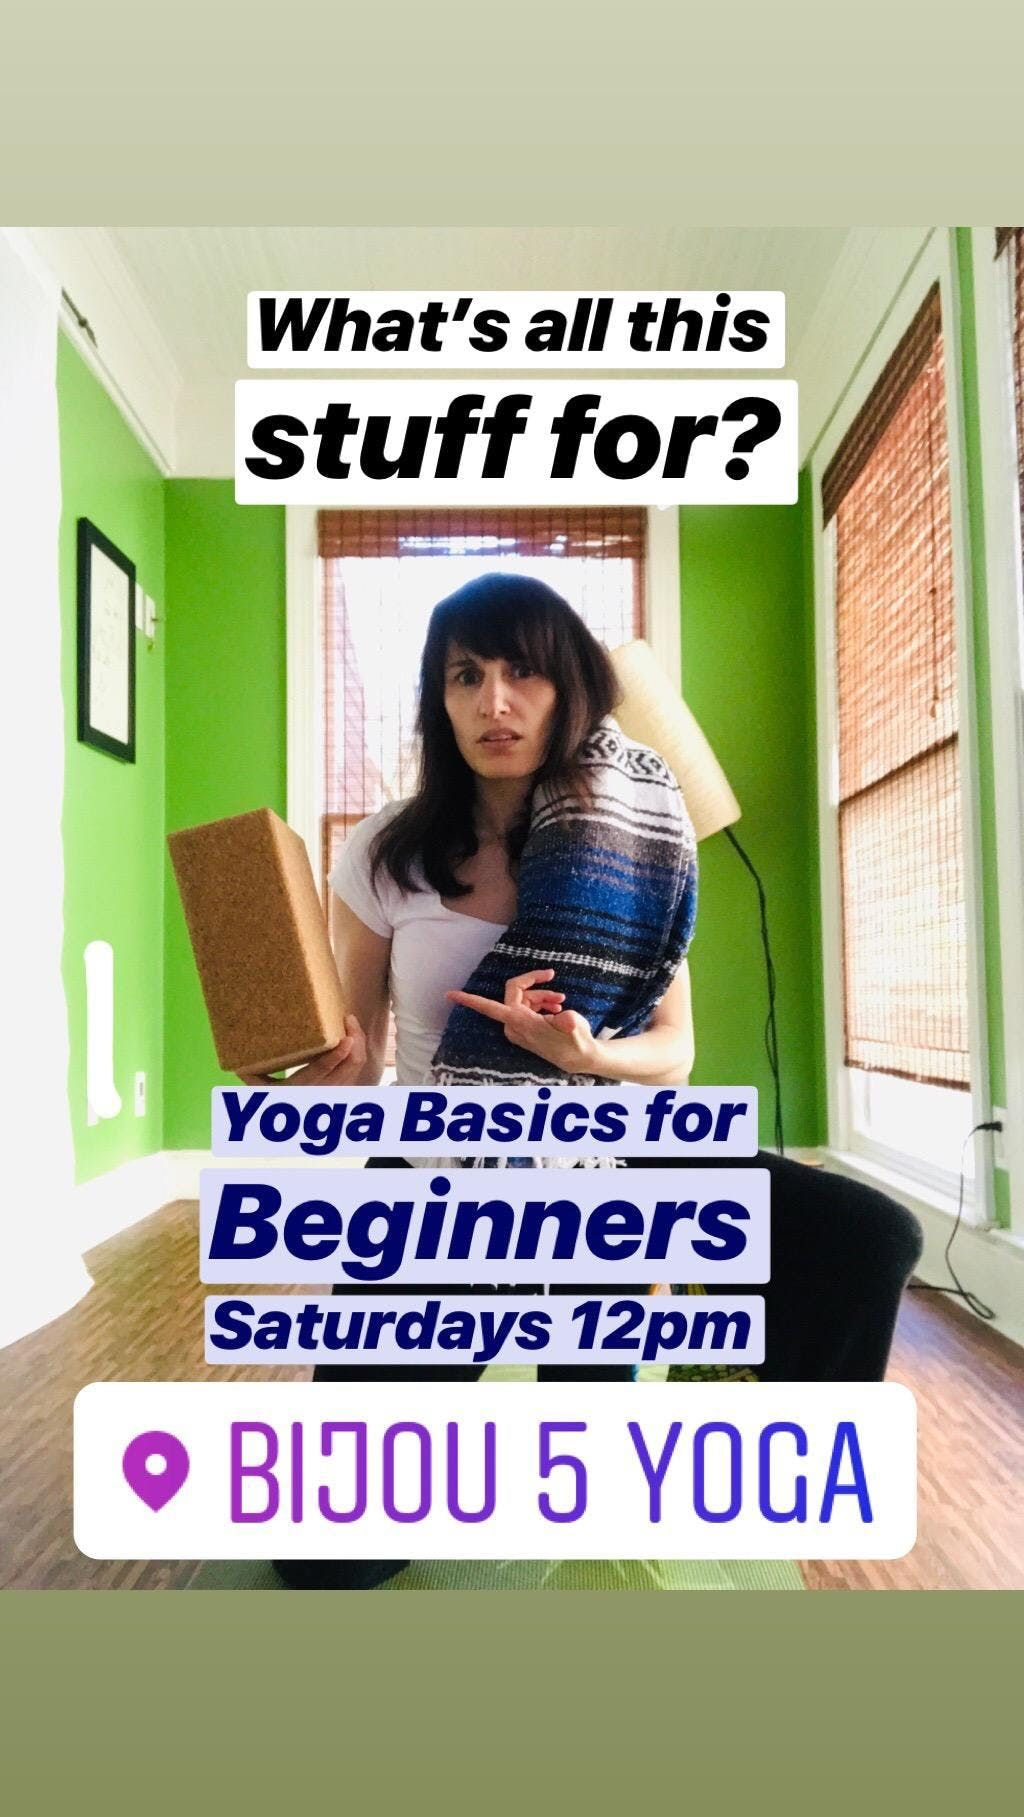 Yoga Basics for Beginners Spot MUST be reserved through www.bijou5yoga.com